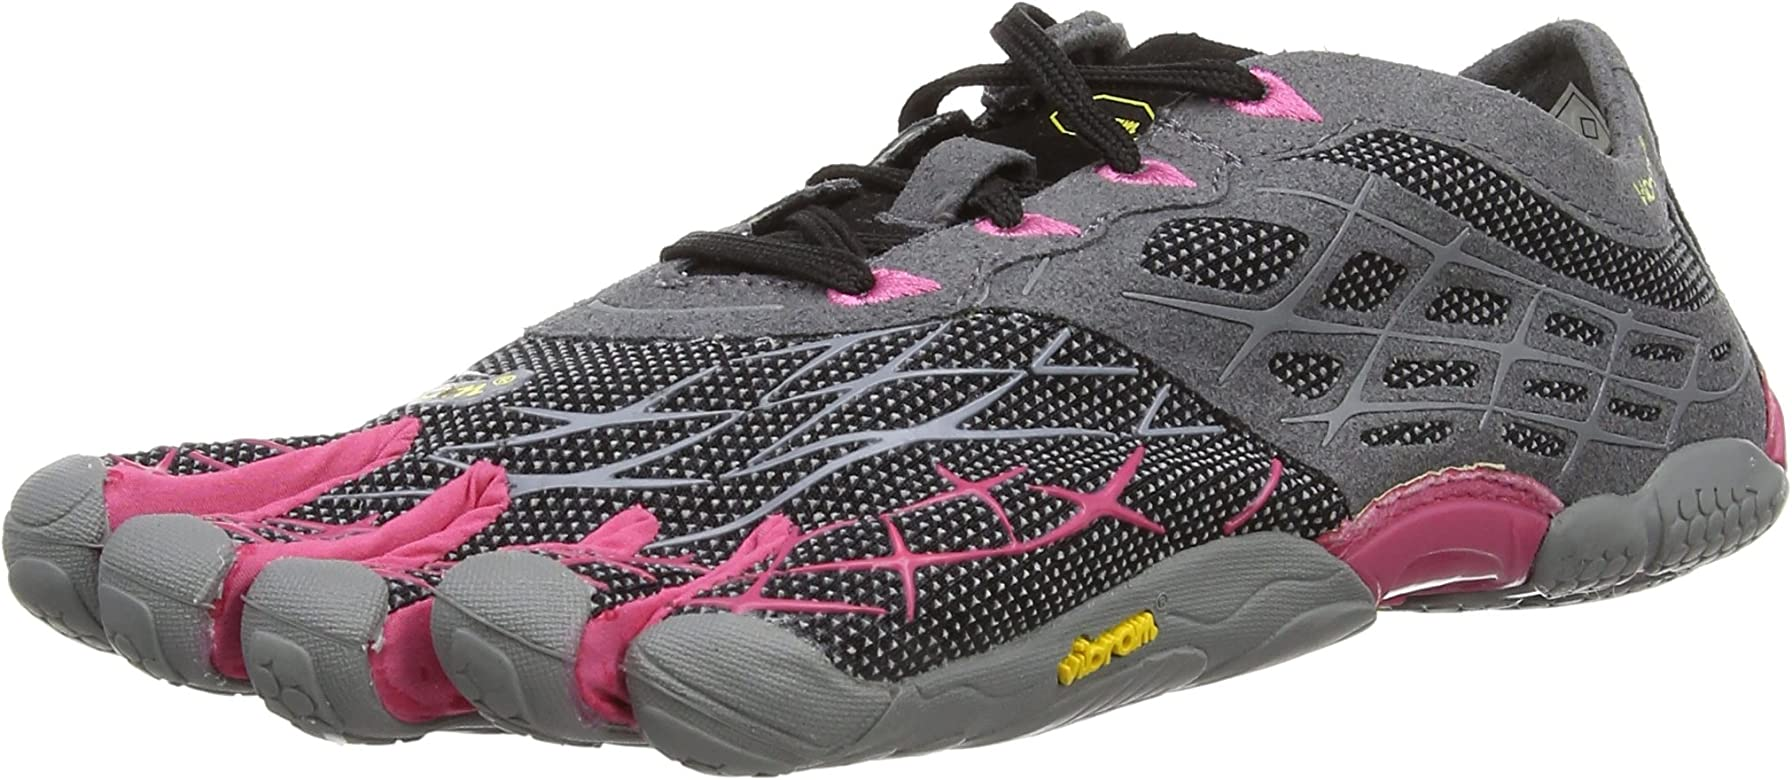 Vibram Five Fingers Seeya LS Night, Zapatillas de Running para Mujer, Black/Grey/Rose, 3.5 UK: Amazon.es: Zapatos y complementos